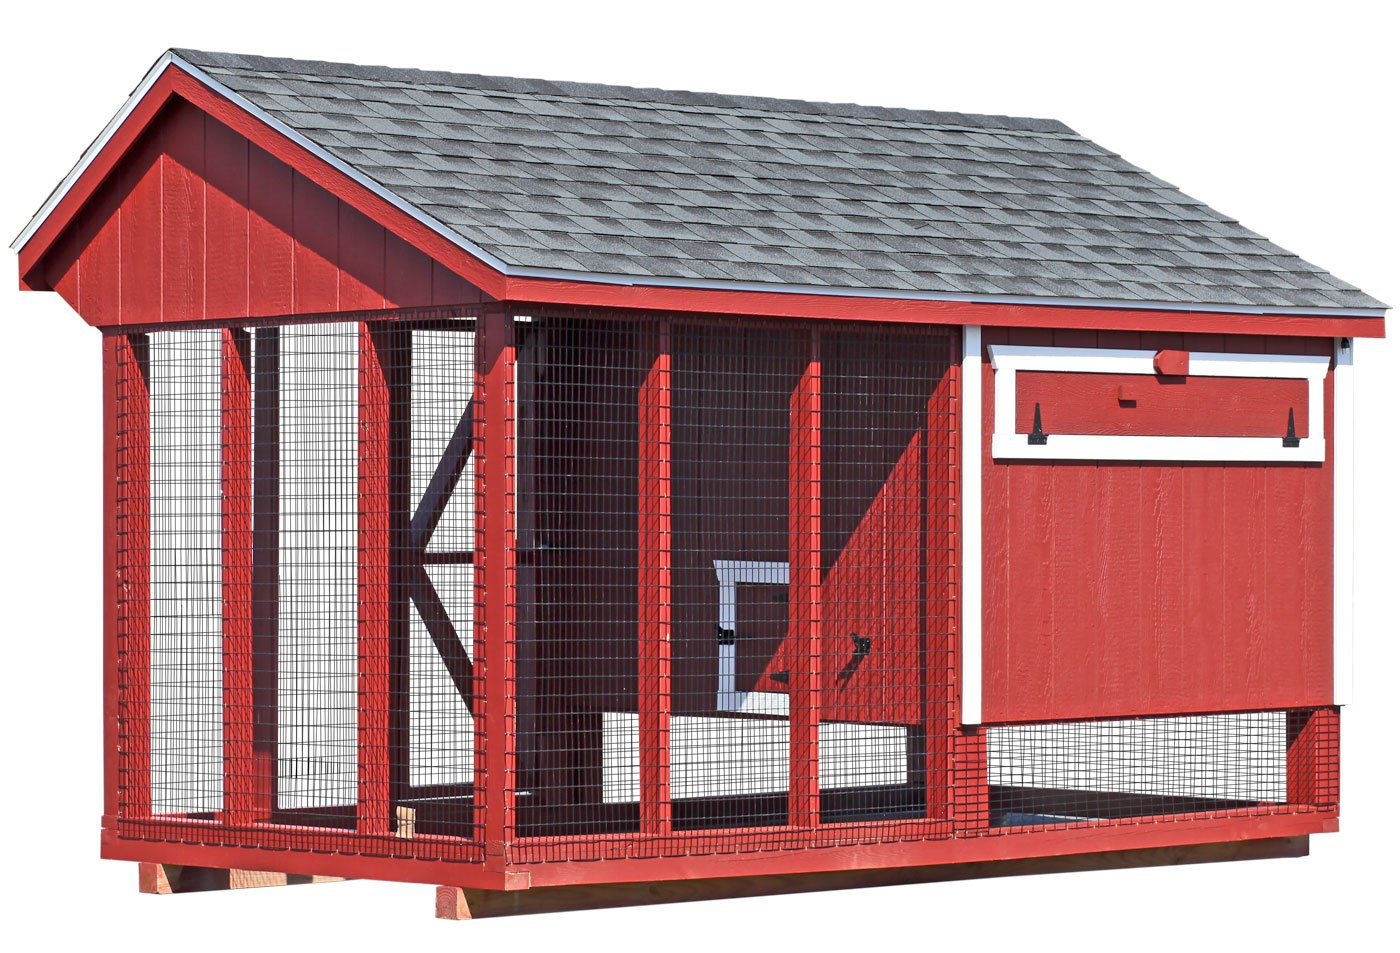 All in one 6x12 chicken coop plus run up to 20 chickens for Chicken run for 6 chickens